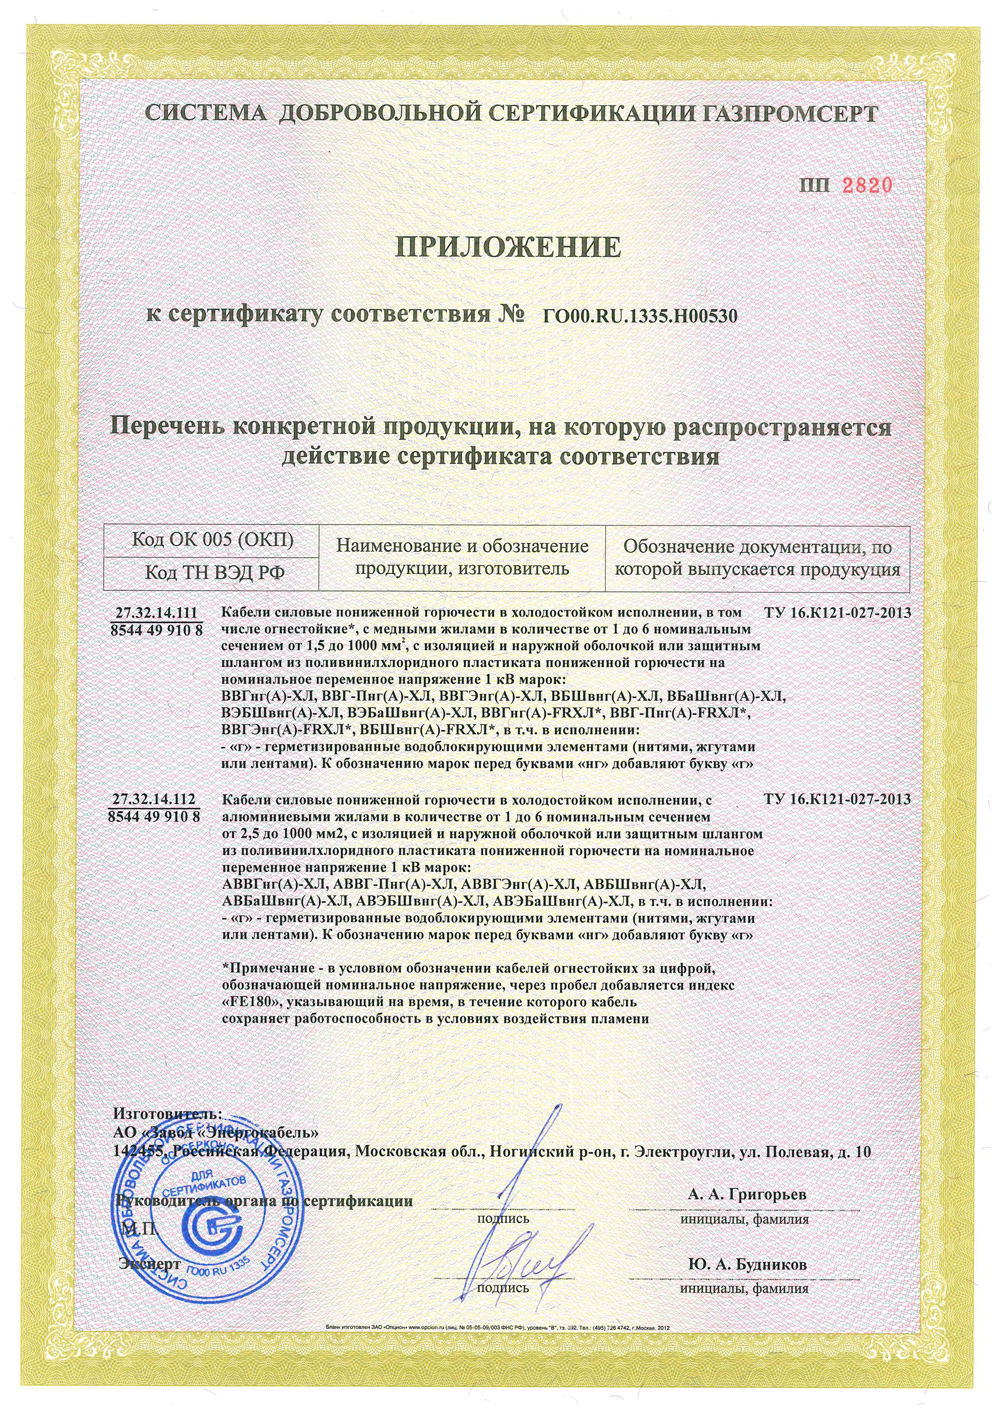 The appendix №2 to the Certificate of Conformity № ГО00.RU.1335.Н00530.